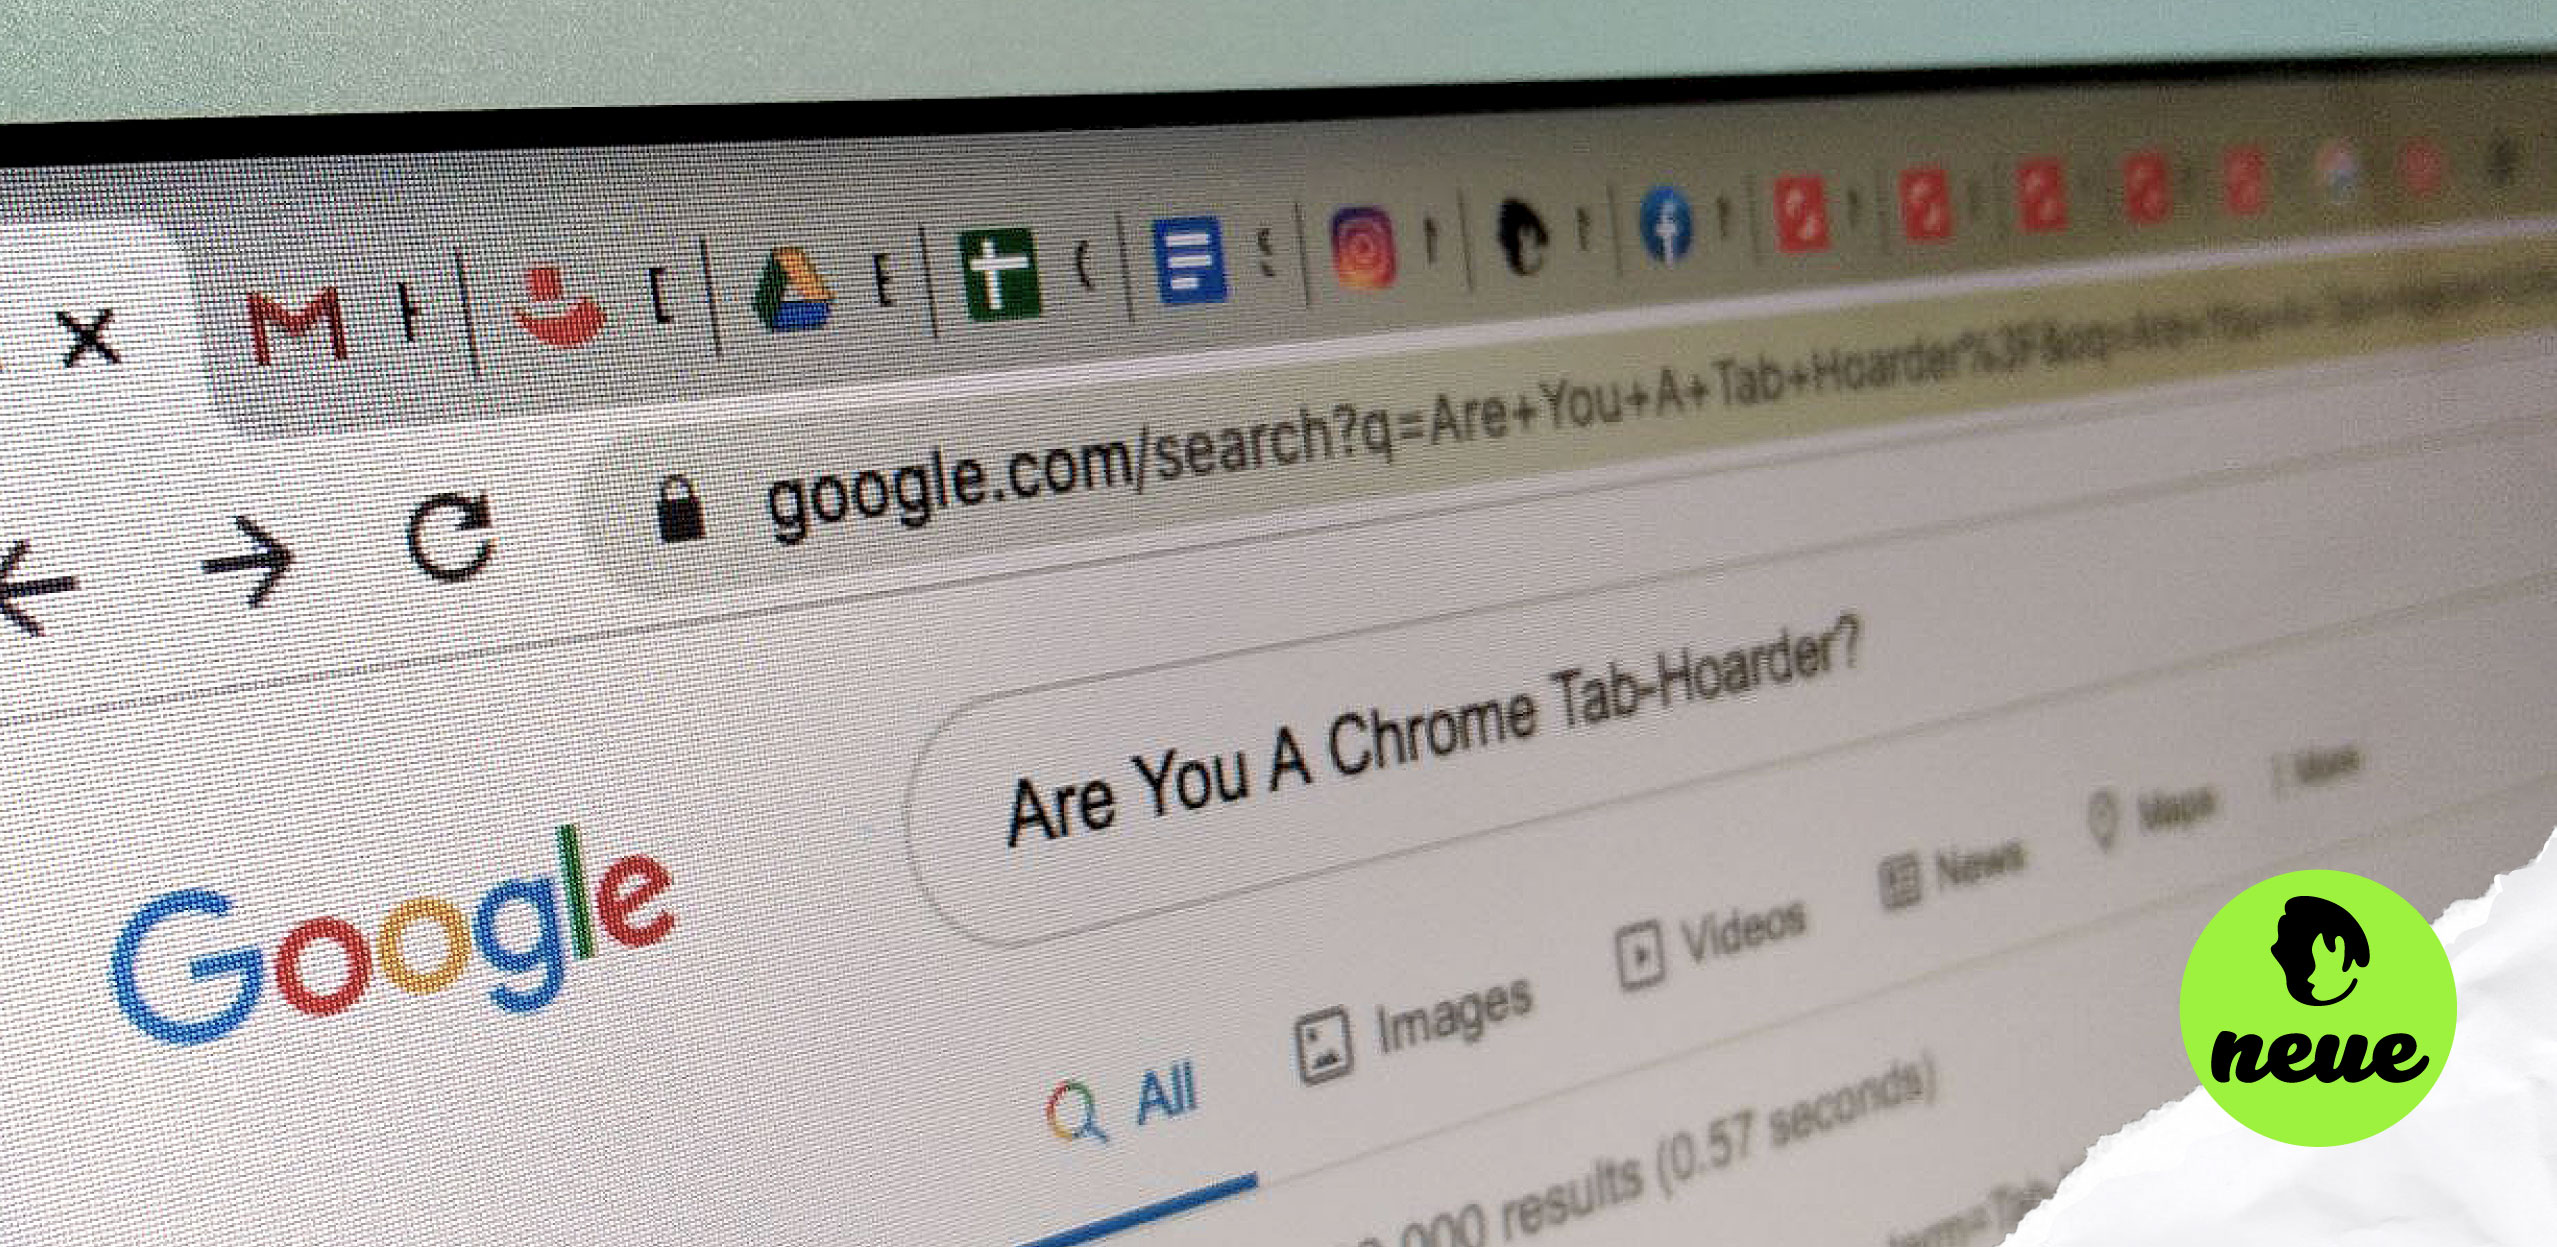 Are You A Chrome Tab-Hoarder?